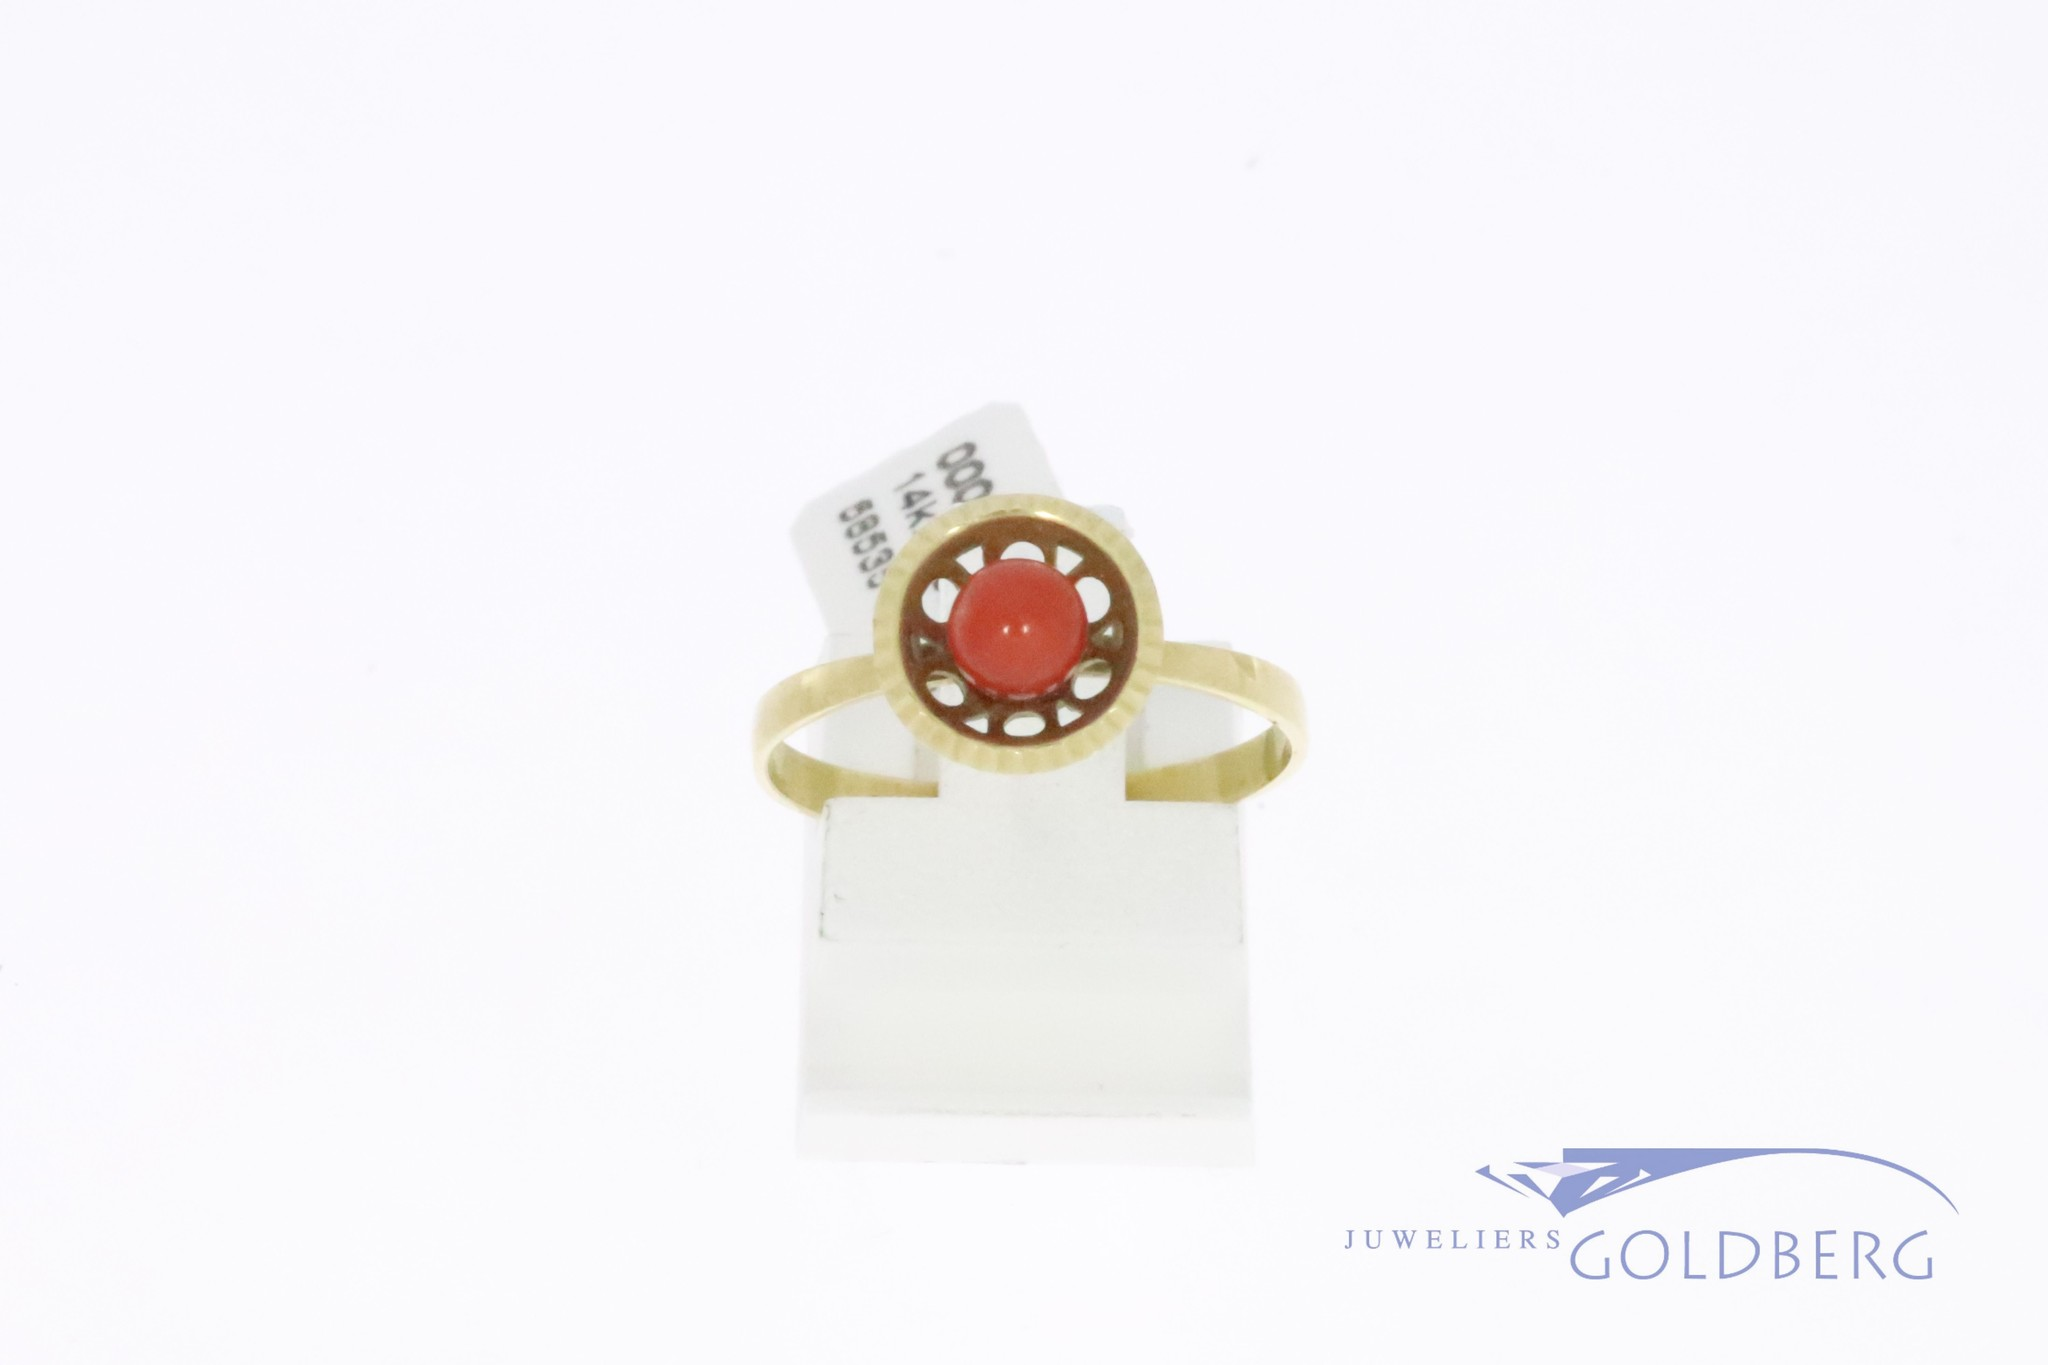 Cute 14k gold vintage ring with precious coral